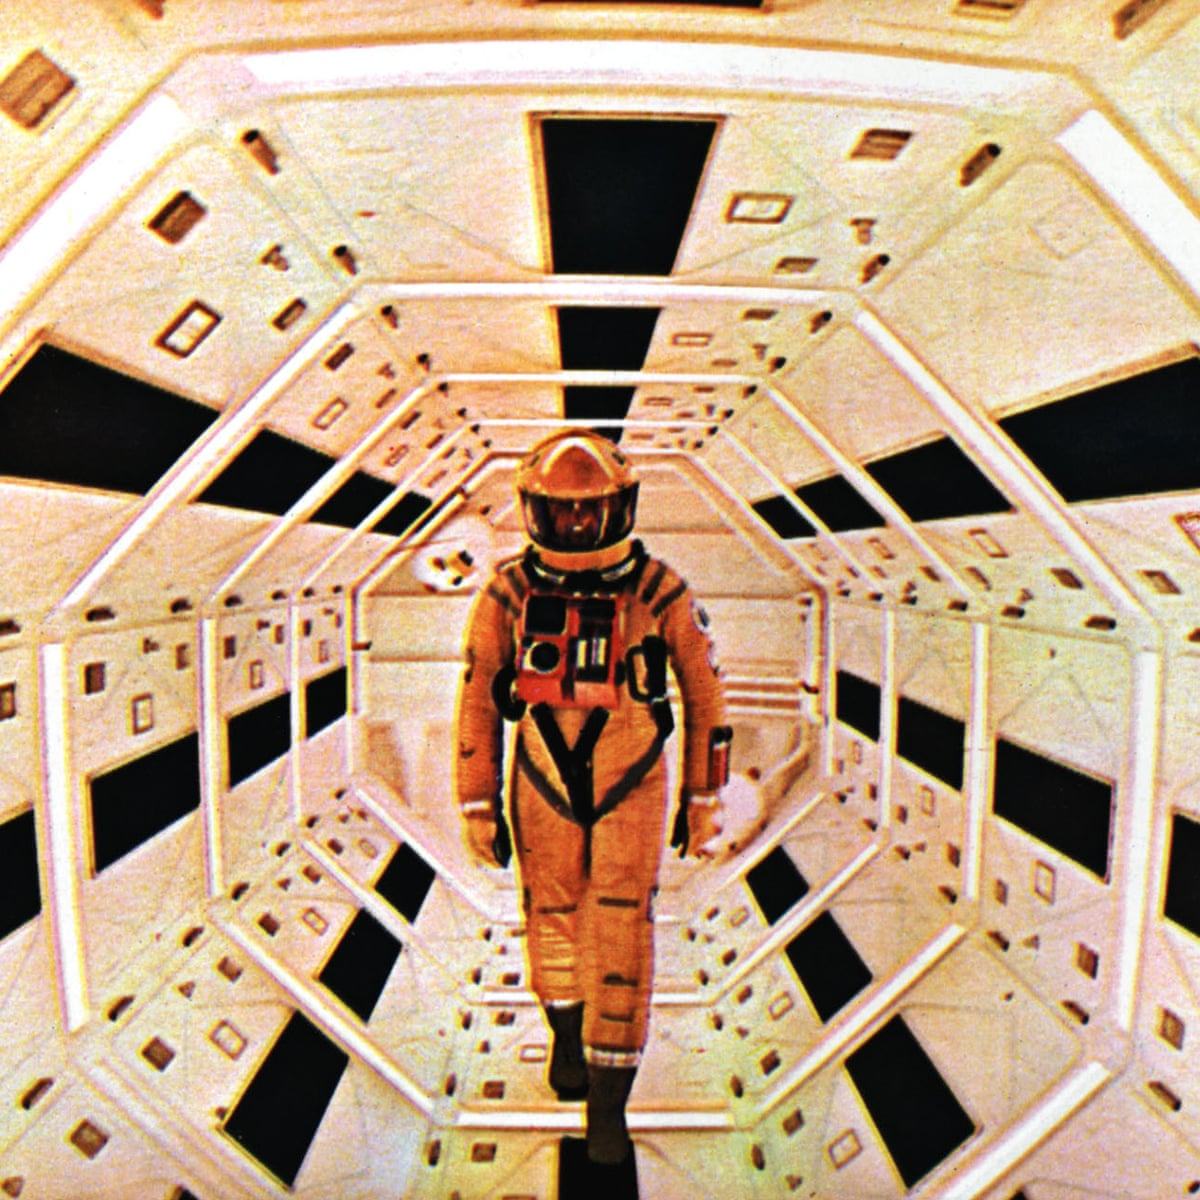 2001 A Space Odyssey Porn Video kubrick's 2001: the film that haunts our dreams of space